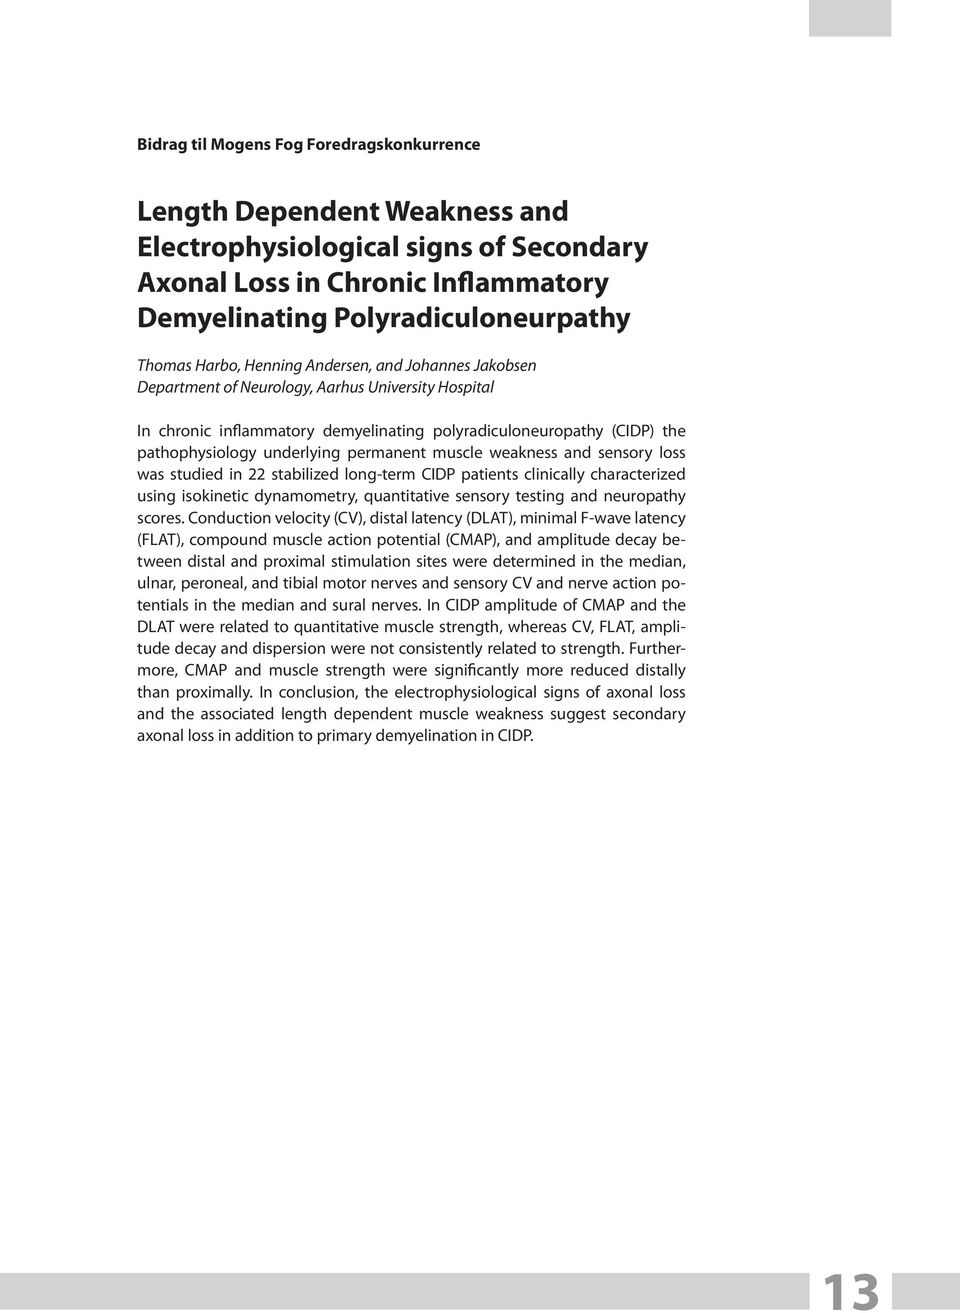 permanent muscle weakness and sensory loss was studied in 22 stabilized long-term CIDP patients clinically characterized using isokinetic dynamometry, quantitative sensory testing and neuropathy